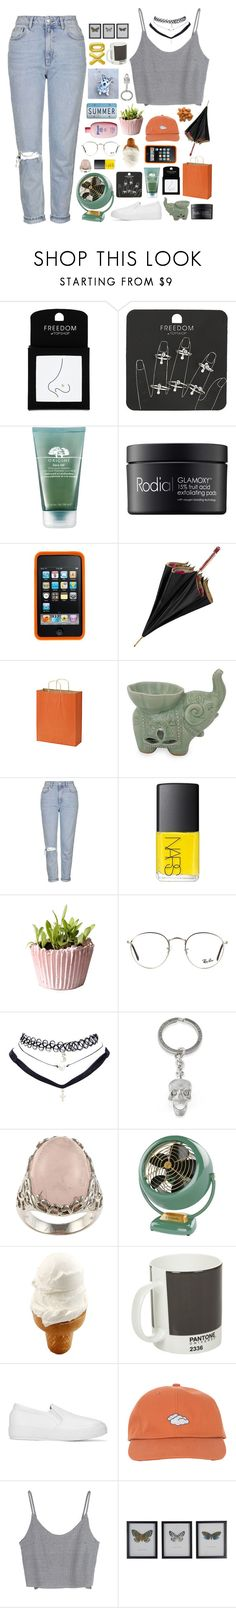 """""""☾ izzy's 1k abc set challenge"""" by thundxrstorms ❤ liked on Polyvore featuring Topshop, Origins, Rodial, Aspinal of London, NOVICA, NARS Cosmetics, Ray-Ban, Wet Seal, La Preciosa and xO Design"""